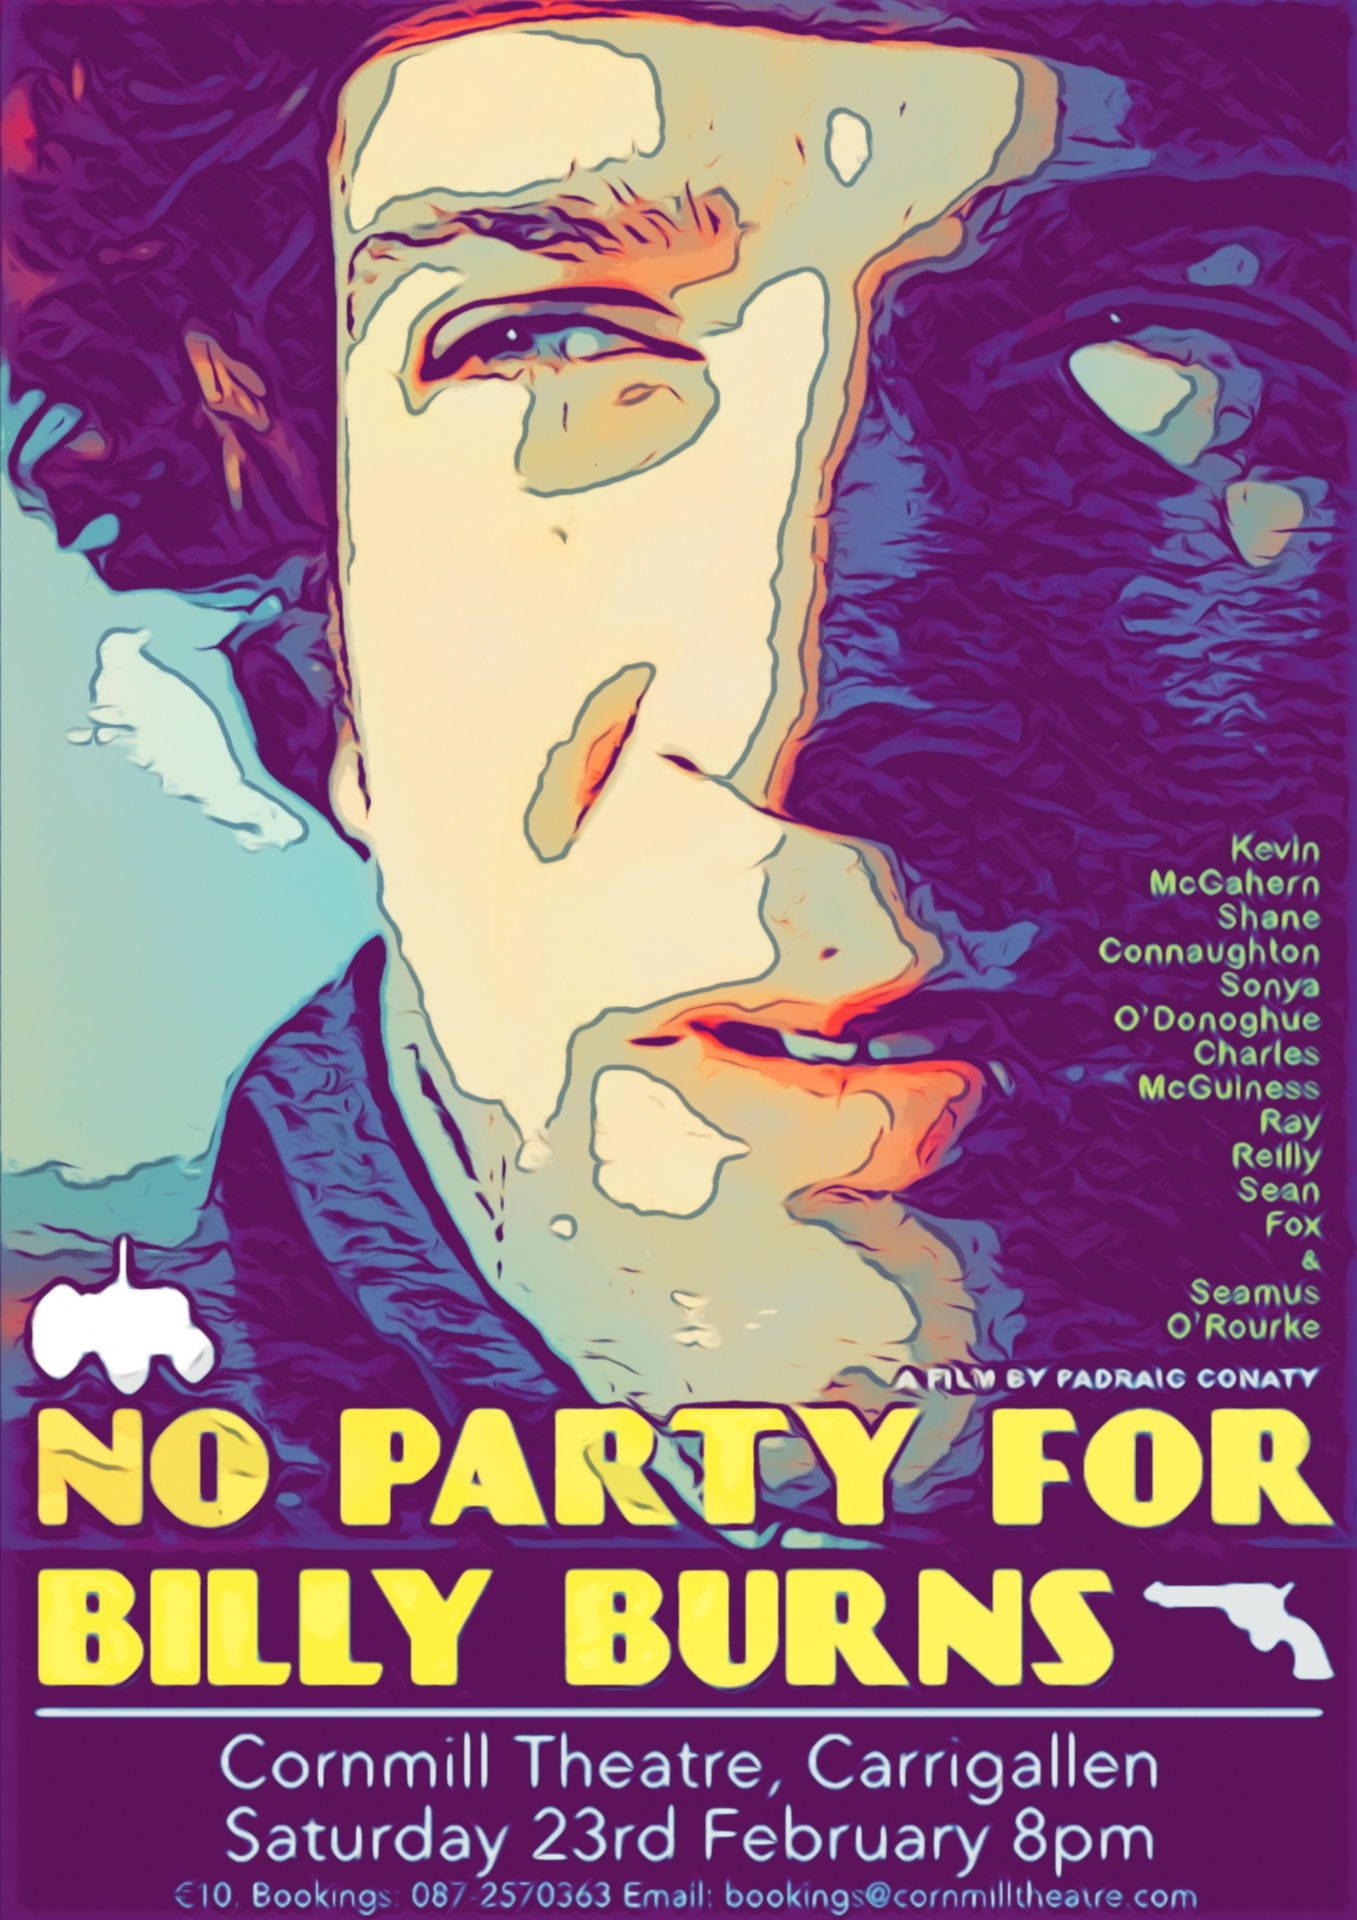 No Party for Billy Burns poster